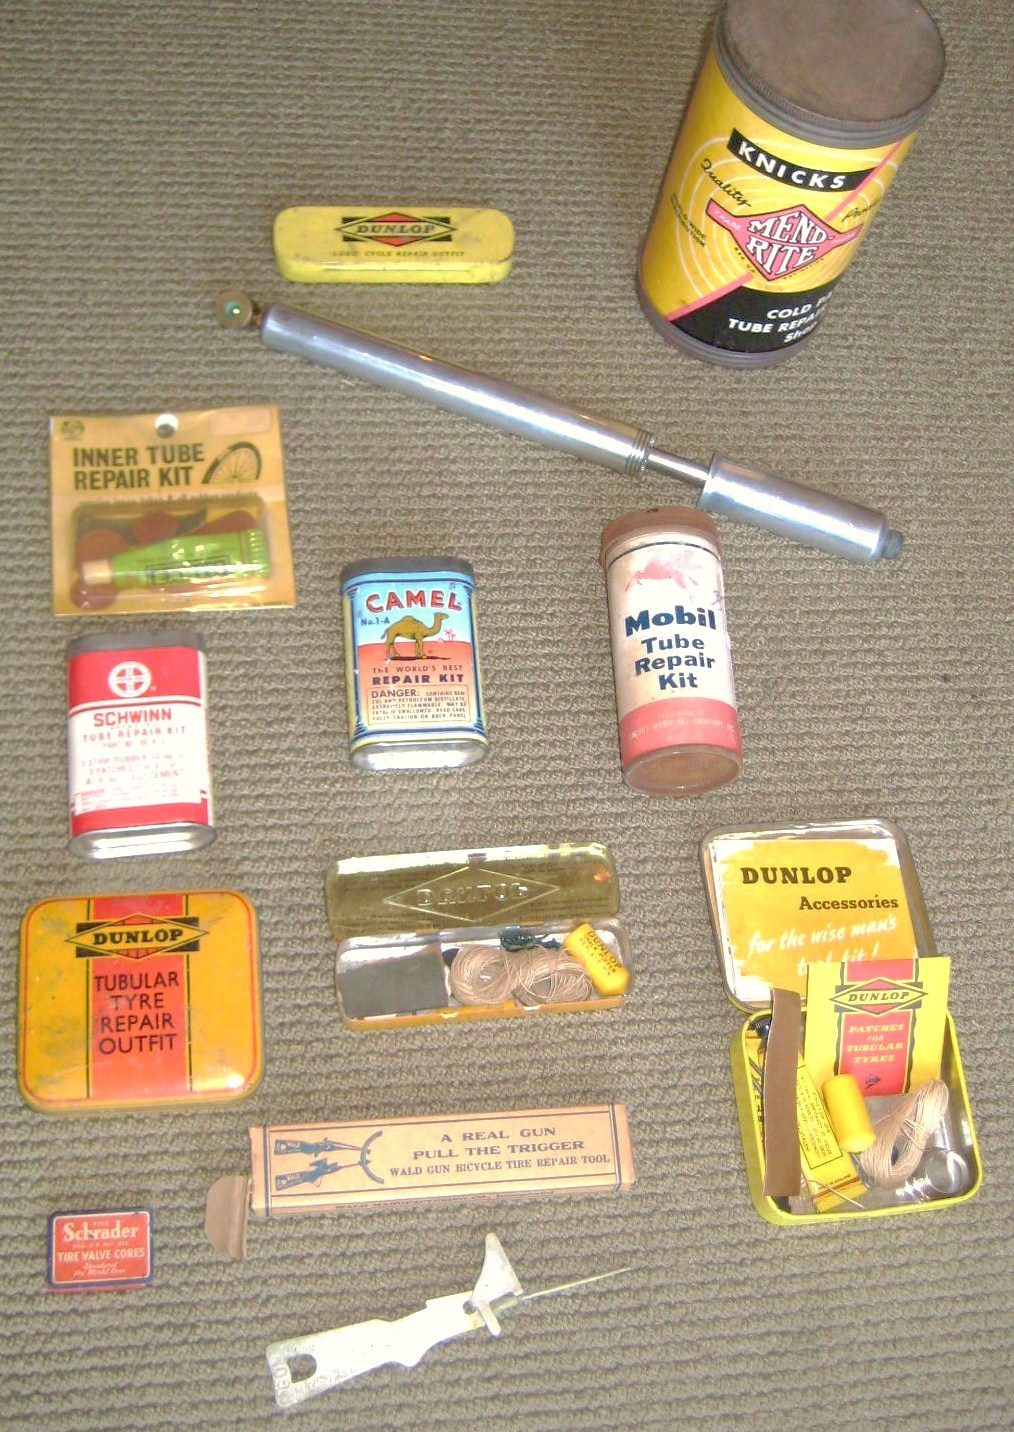 Tire Repair Kit >> Vintage bicycle patch kits and pumps at Classic Cycle | Classic Cycle Bainbridge Island Kitsap ...